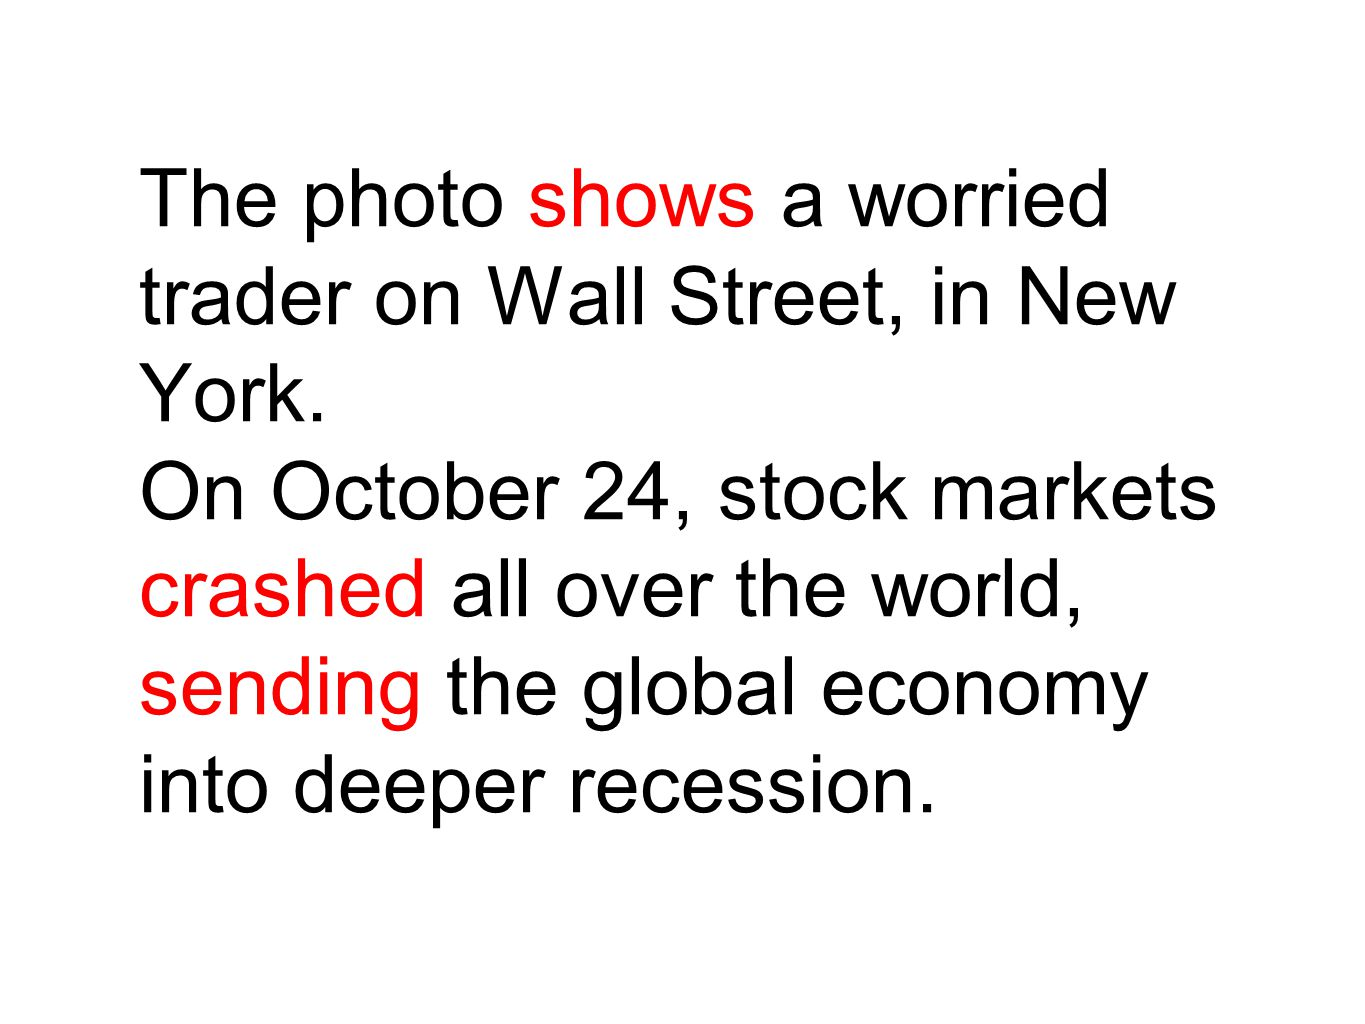 The photo shows a worried trader on Wall Street, in New York. On October 24, stock markets crashed all over the world, sending the global economy into